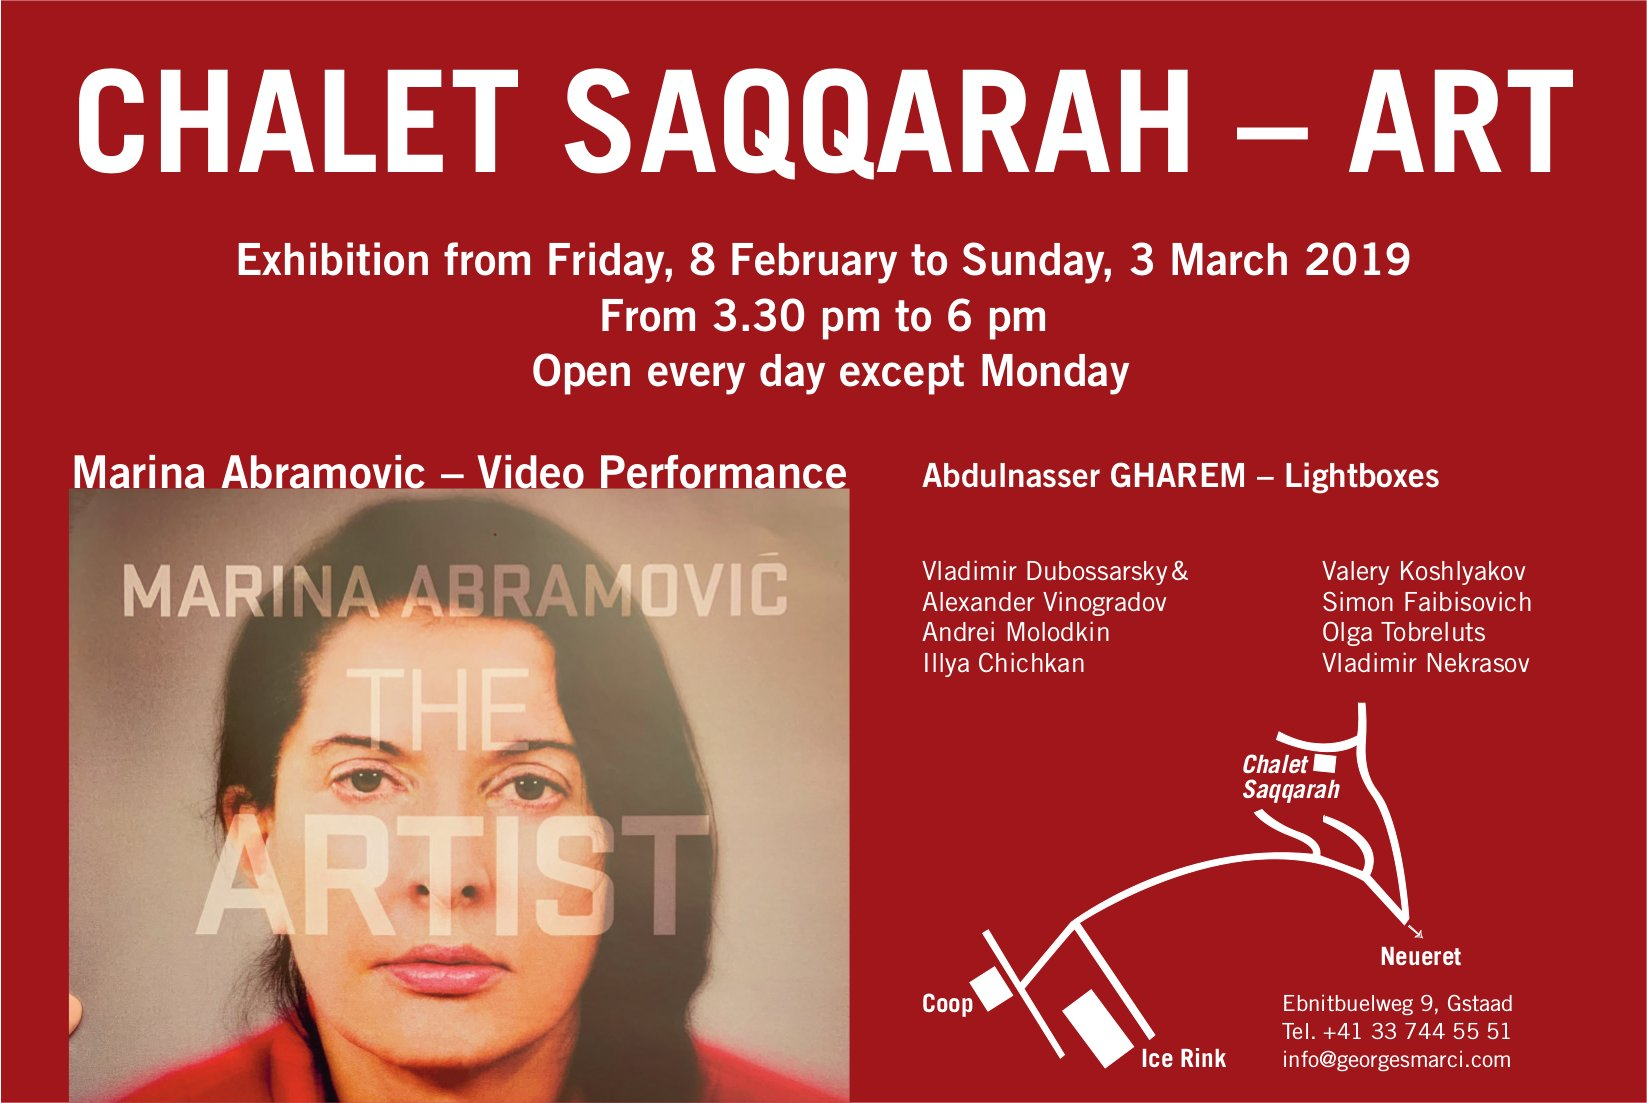 Marina Abramovic, 8 February - 3 March, Chalet Saqqarah - Art